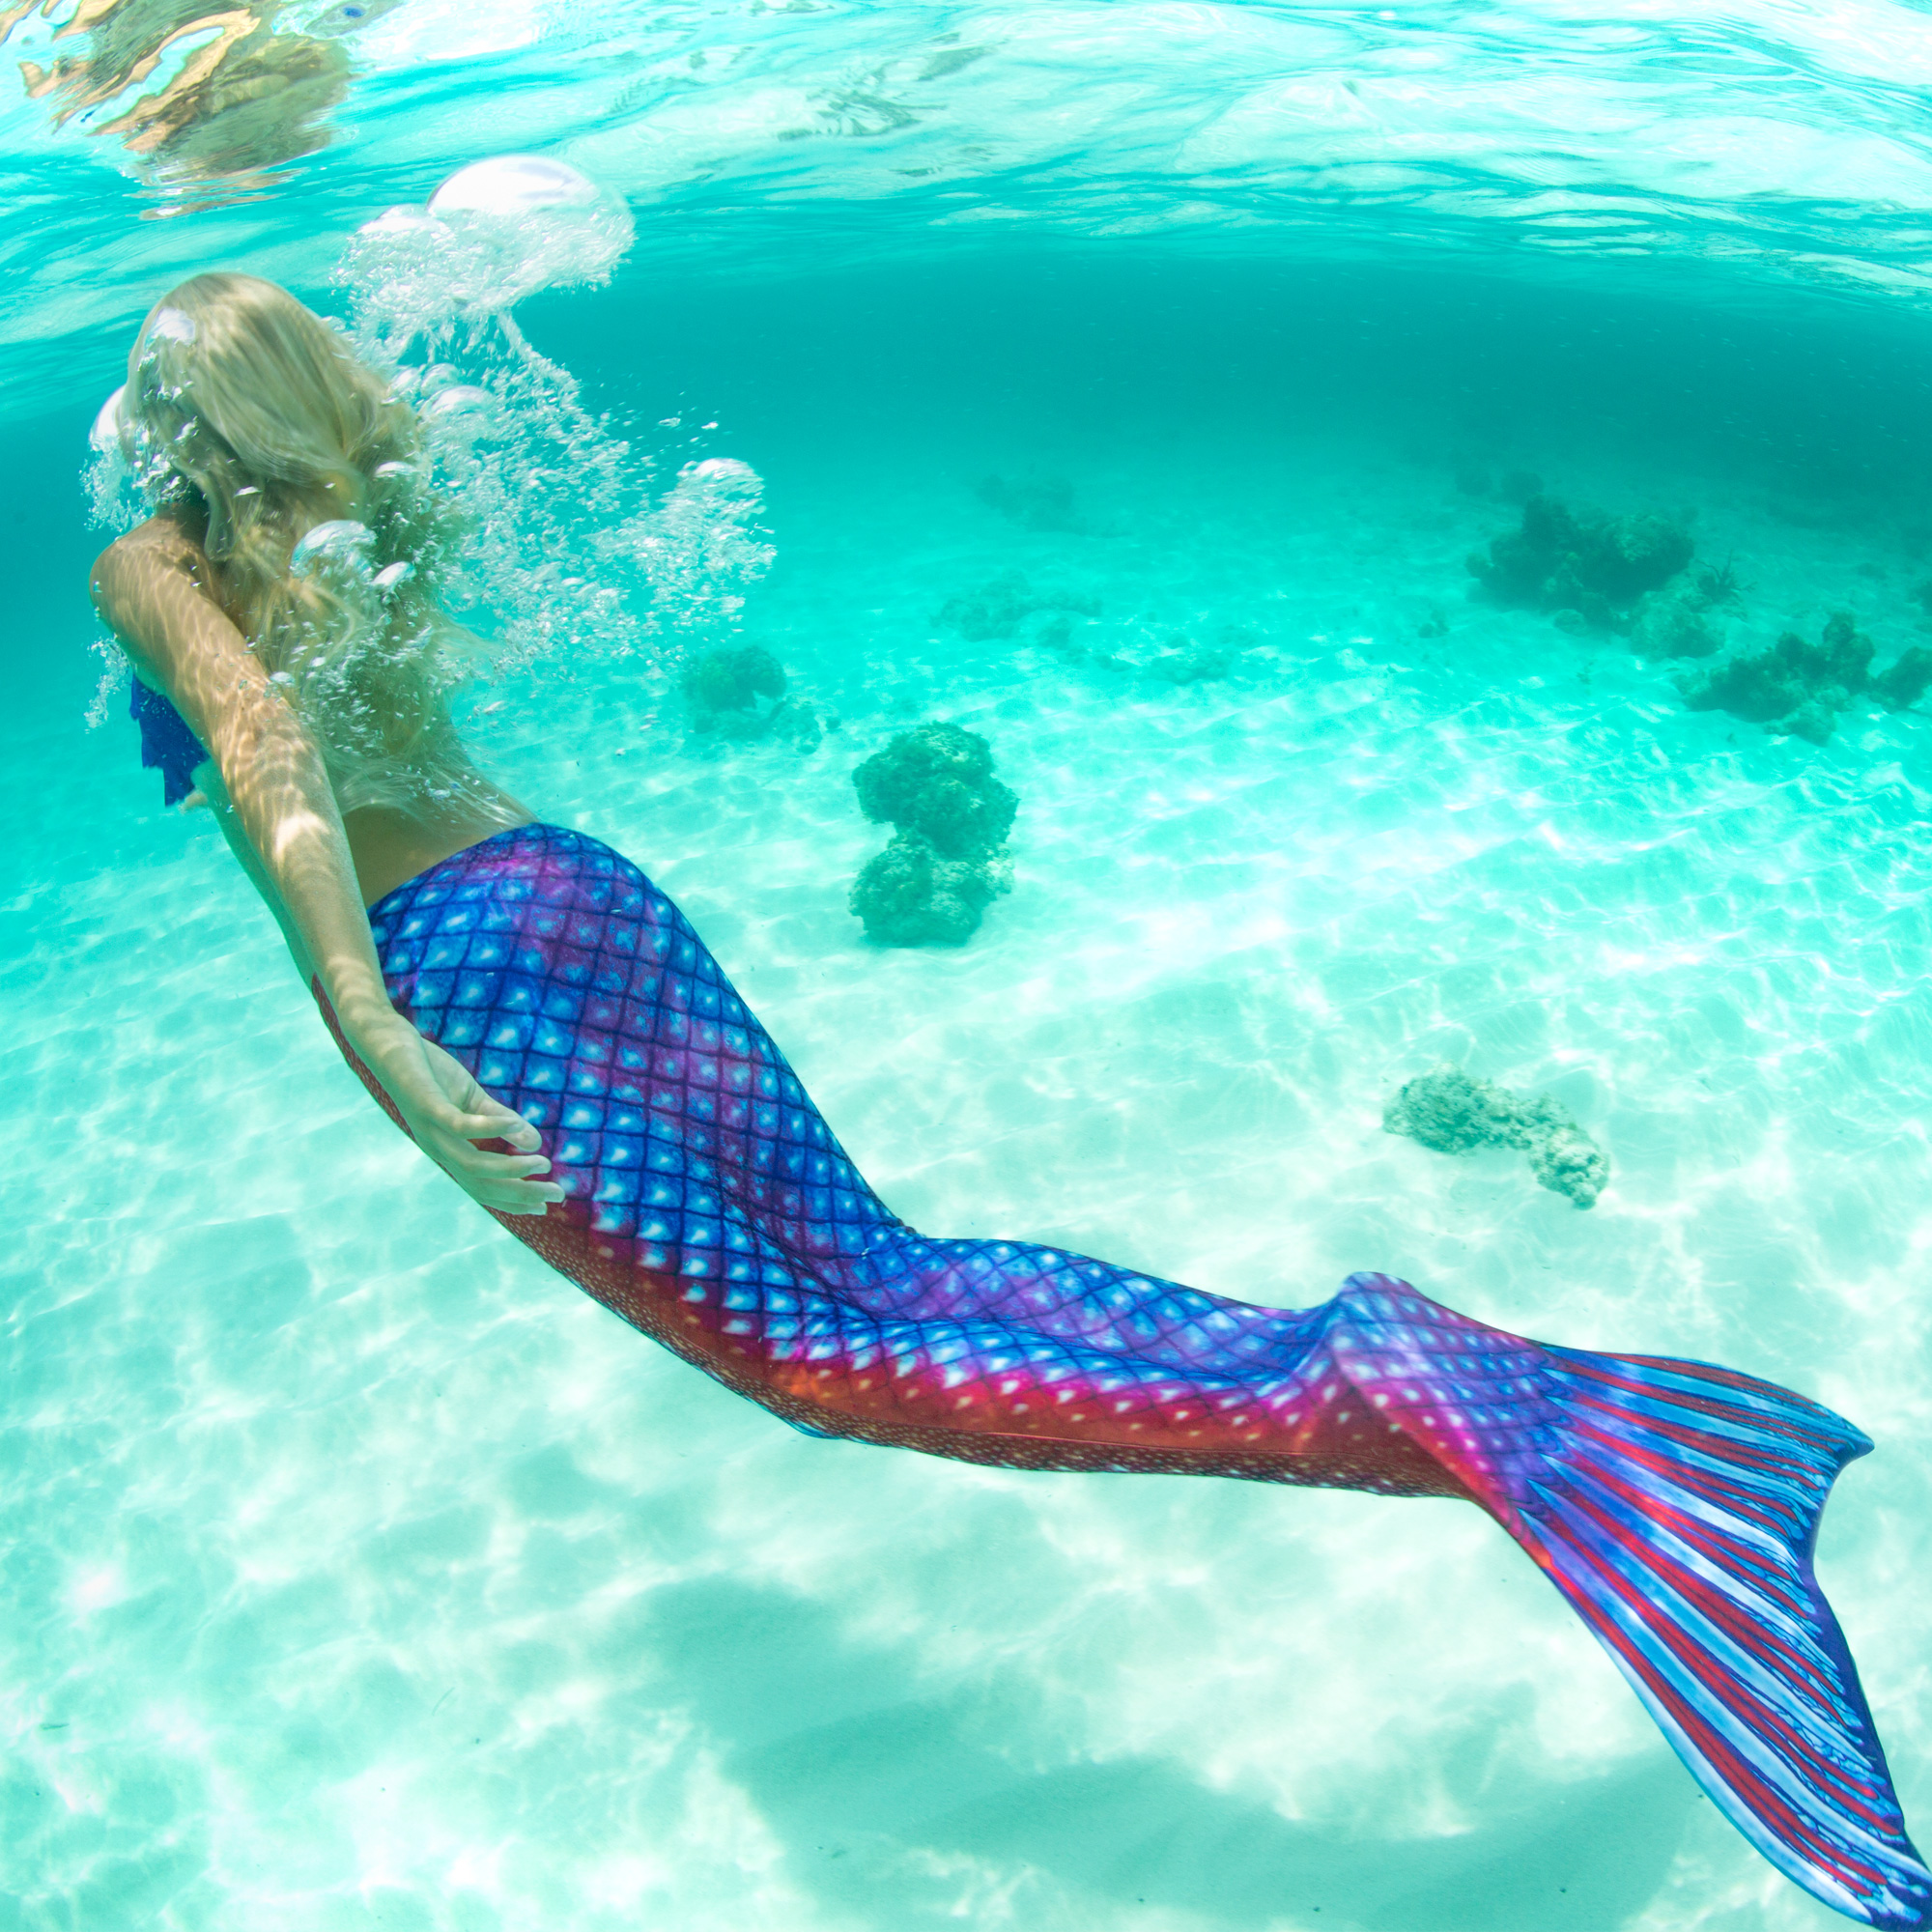 Kids-Mermaid-Tails-for-Swimming-Fin-Fun-Limited-Edition-With-Monofin